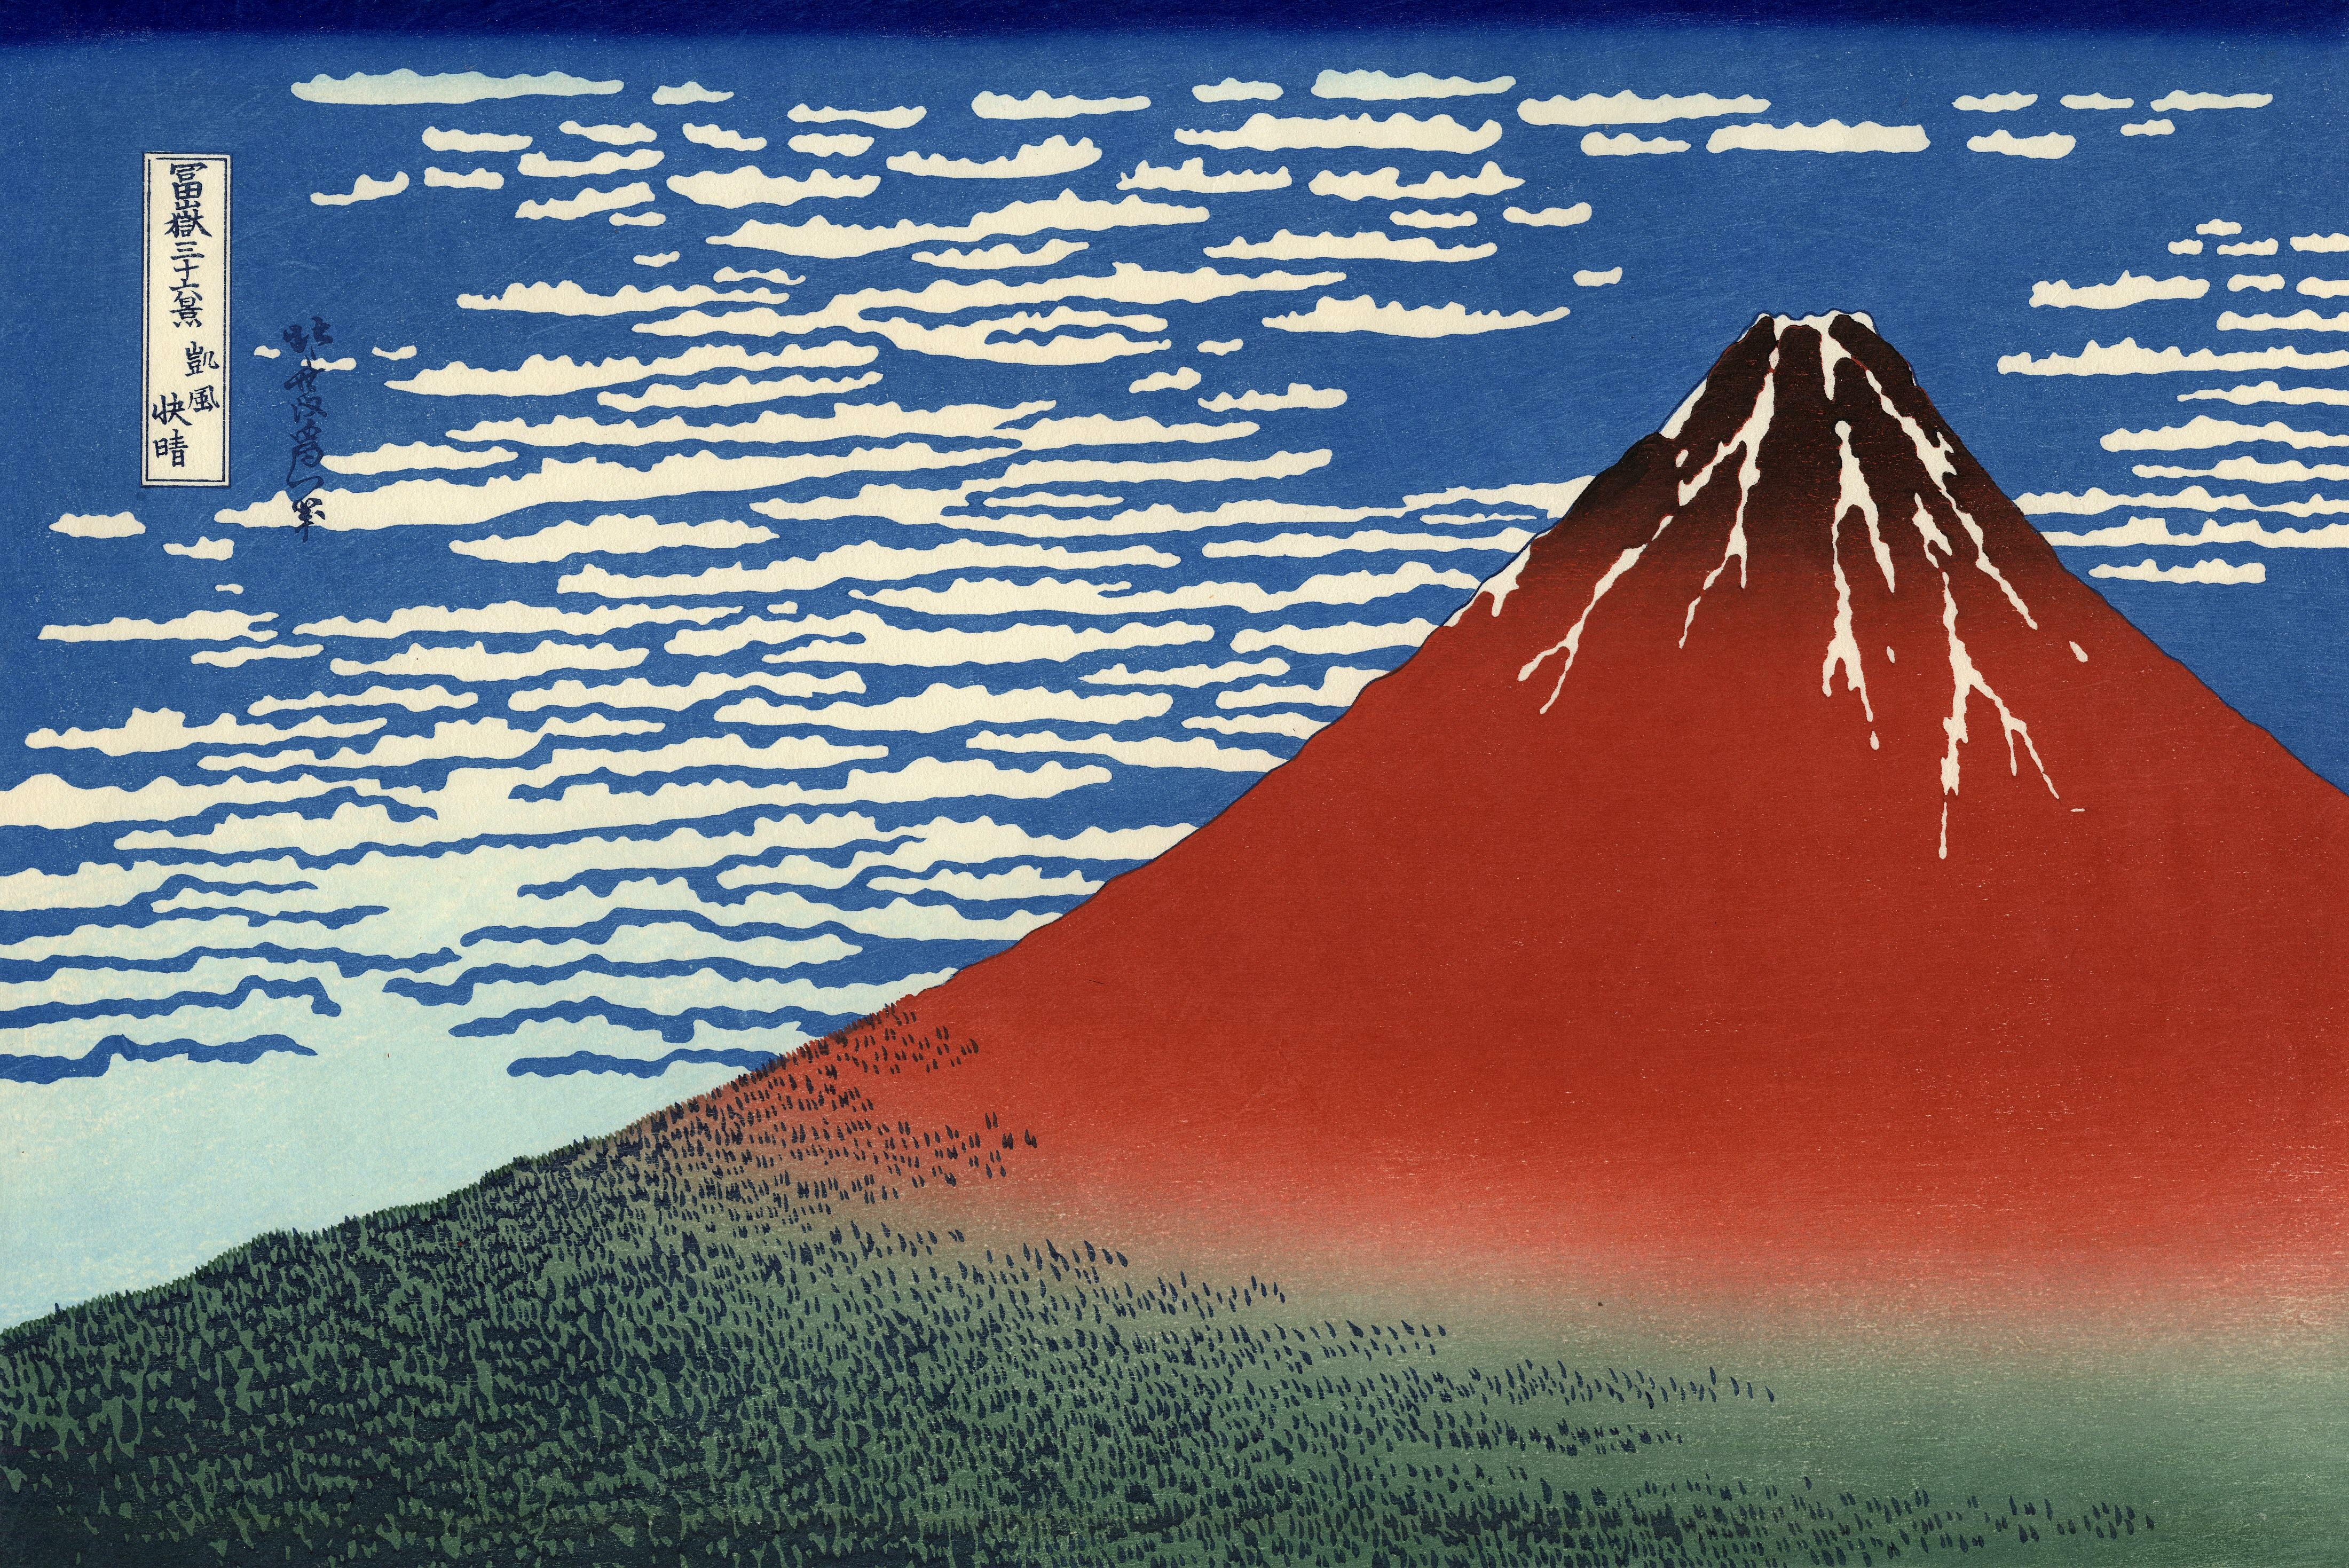 Katsushika Hokusai, South Wind at Clear Dawn (Gaifu kaisei)